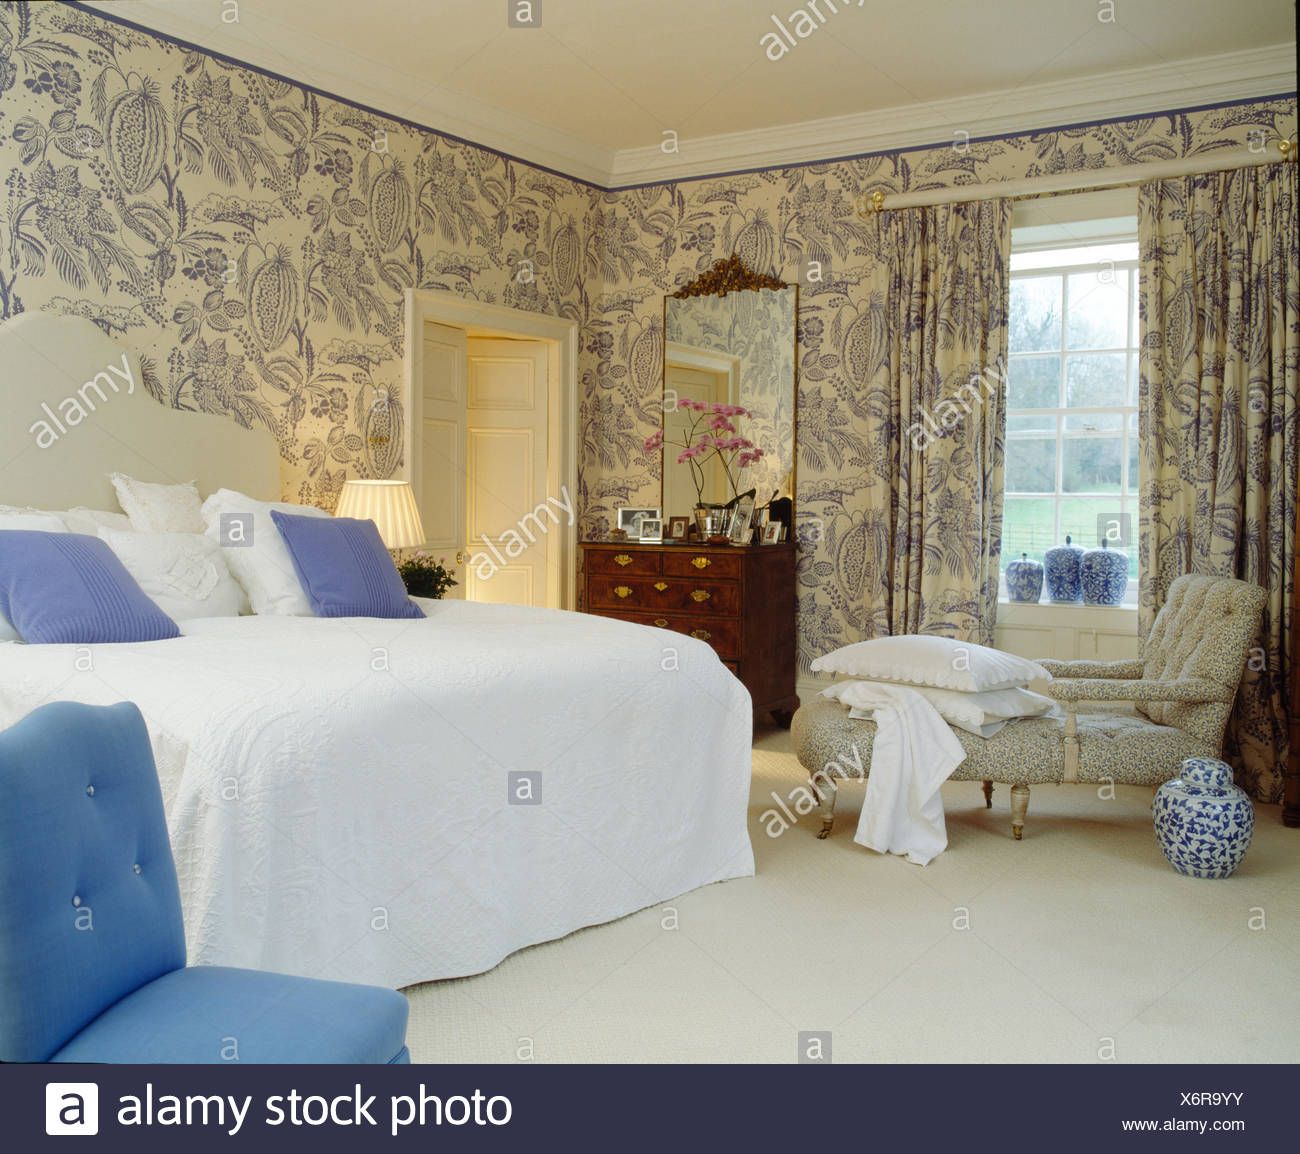 Blue+white wallpaper and matching curtains in country bedroom with chaise longue and bed with white quilt - Stock Image